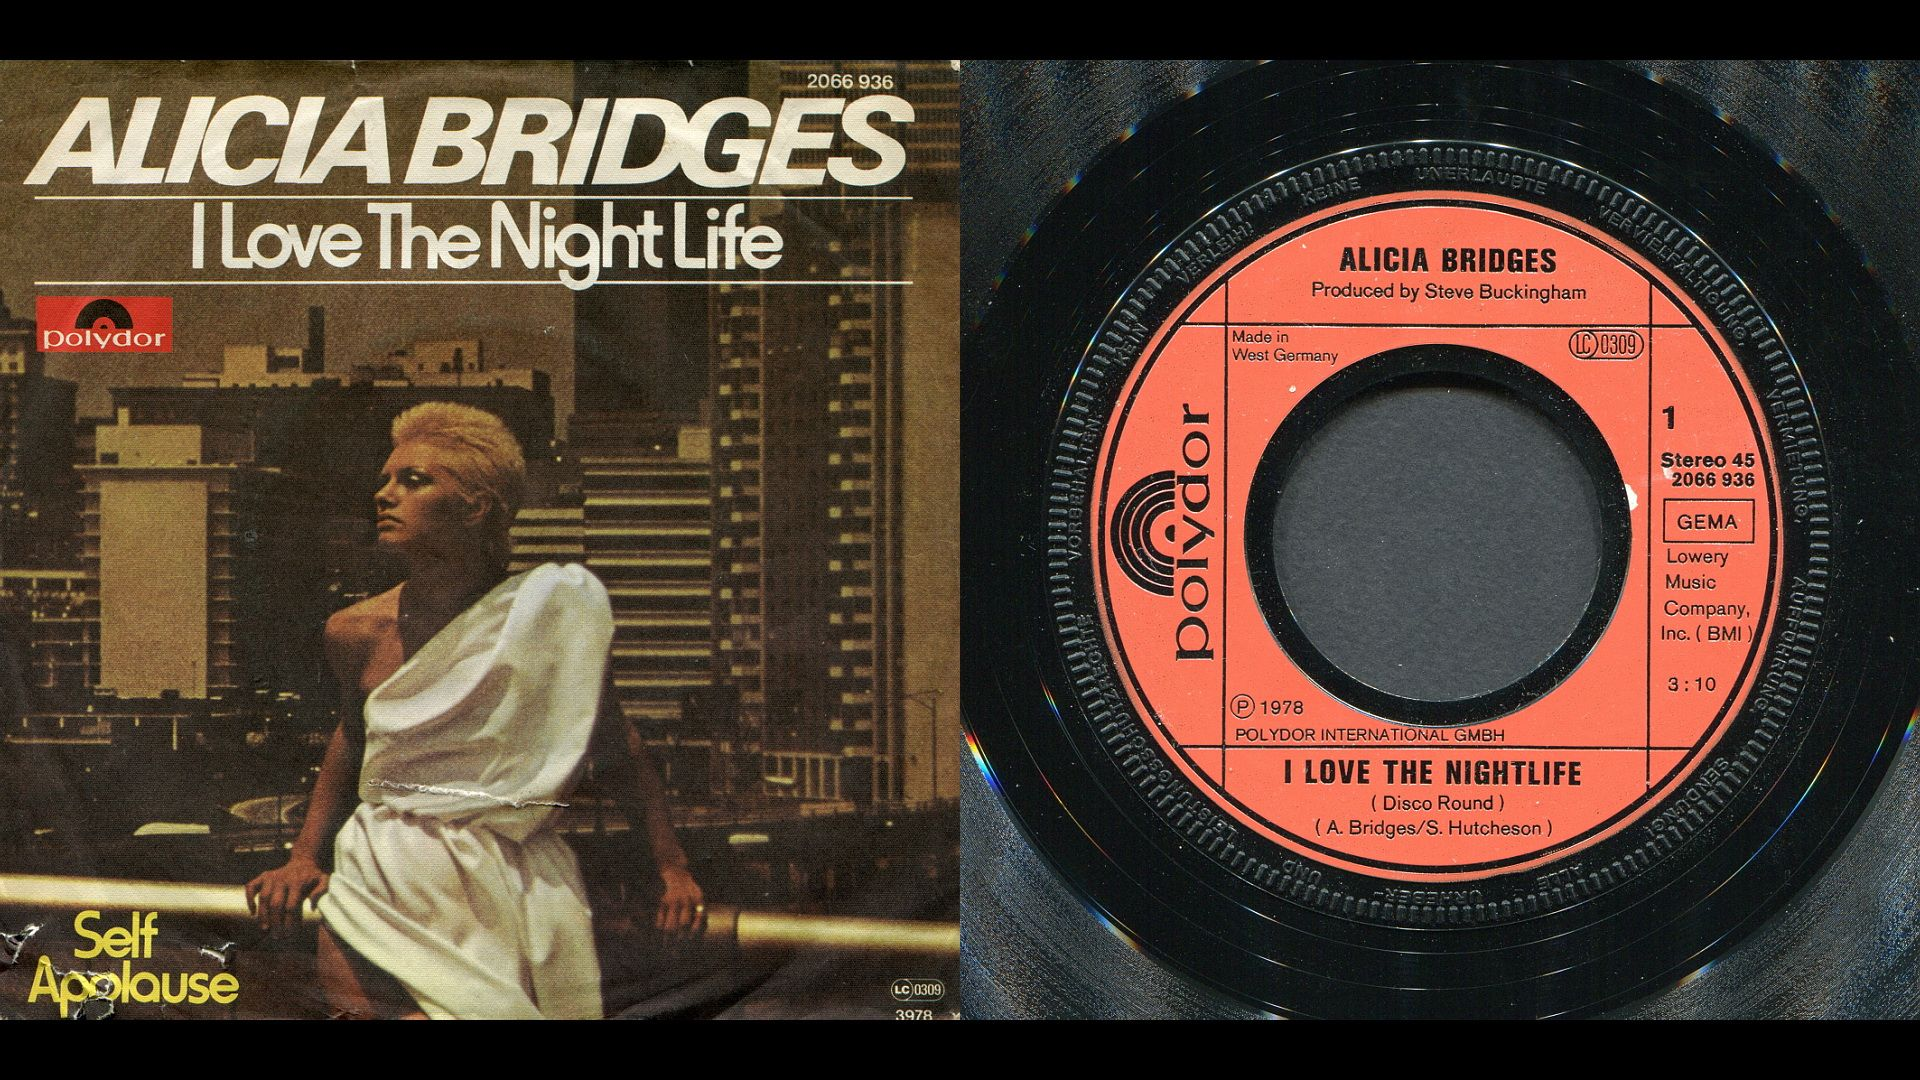 Pin Af Jan Knudsen Pa Alicia Bridges 1978 I Love The Nightlife